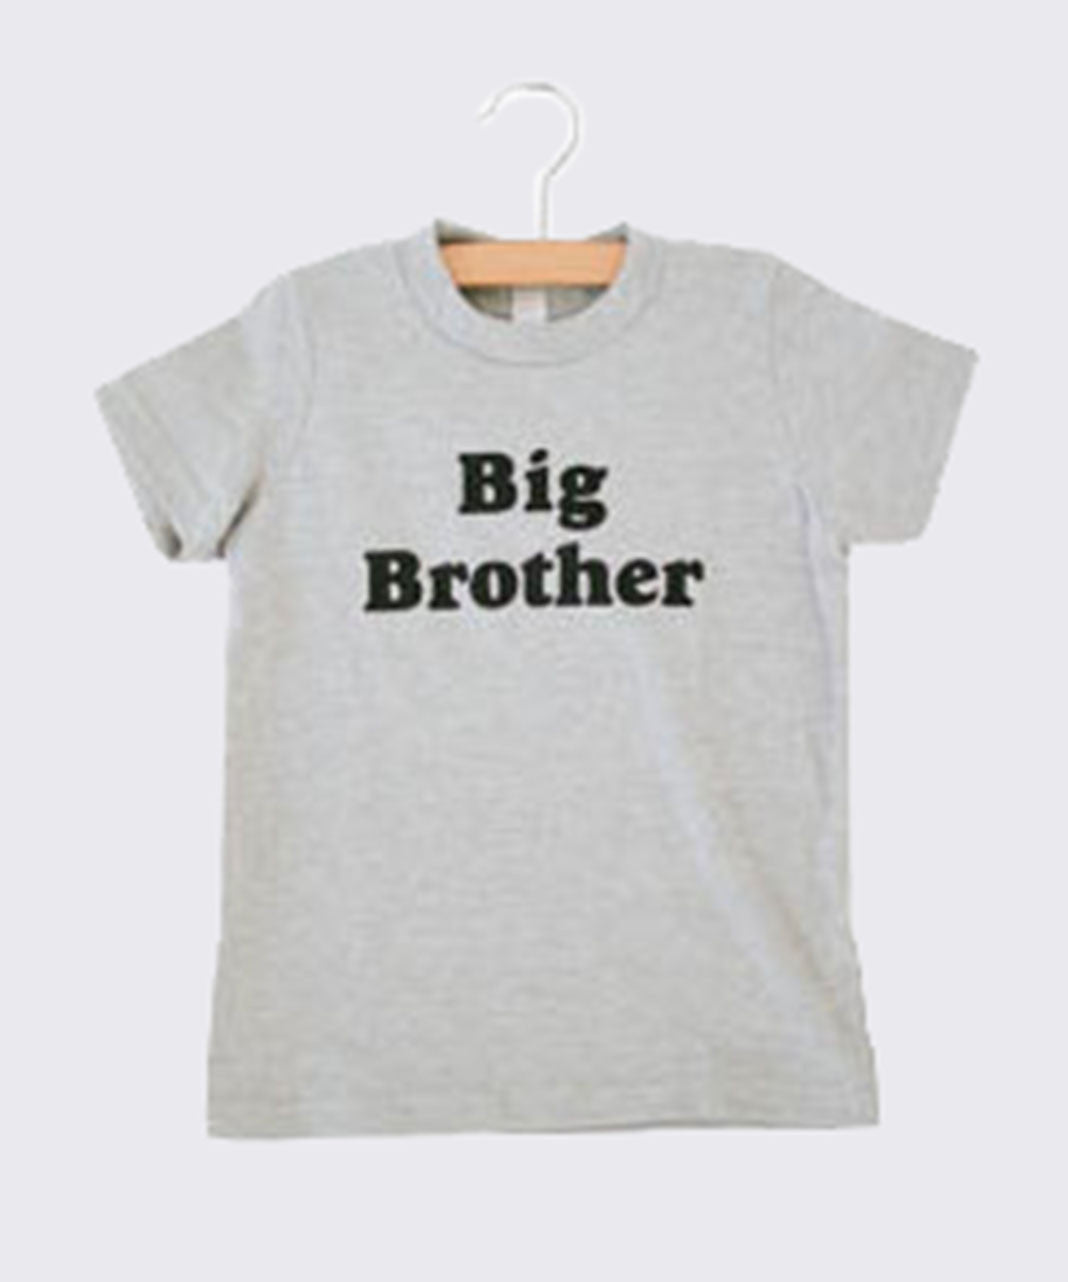 f495461d ... Big Brother Children's t-shirt by The Bee and The Fox - The Little  Movement ...